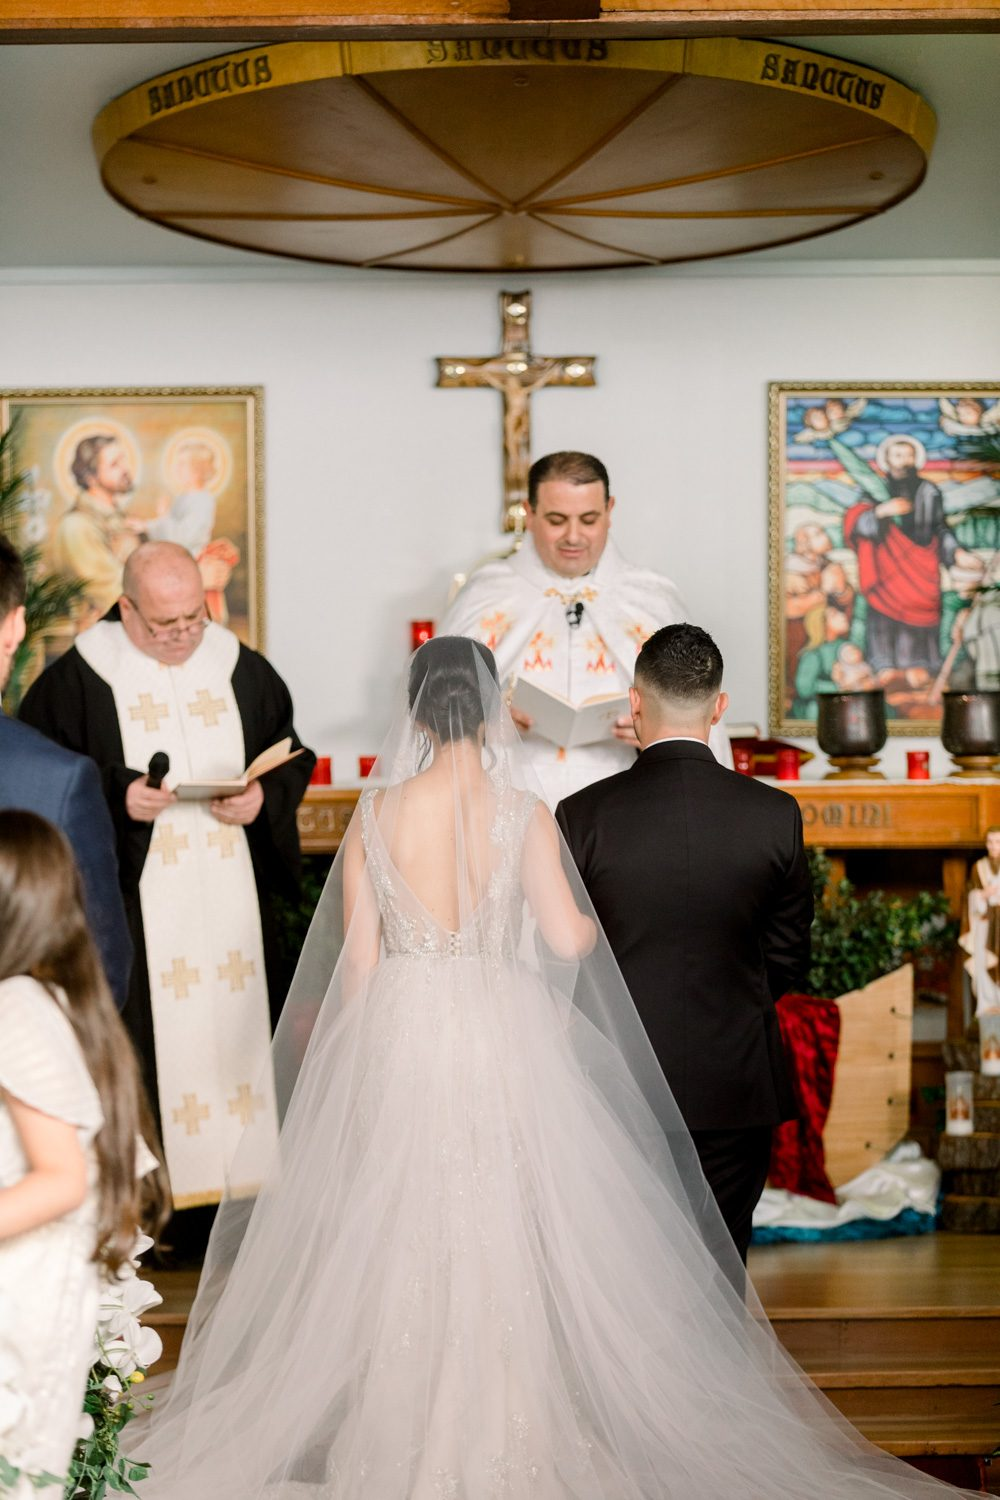 photos of Bride and groom's church ceremony